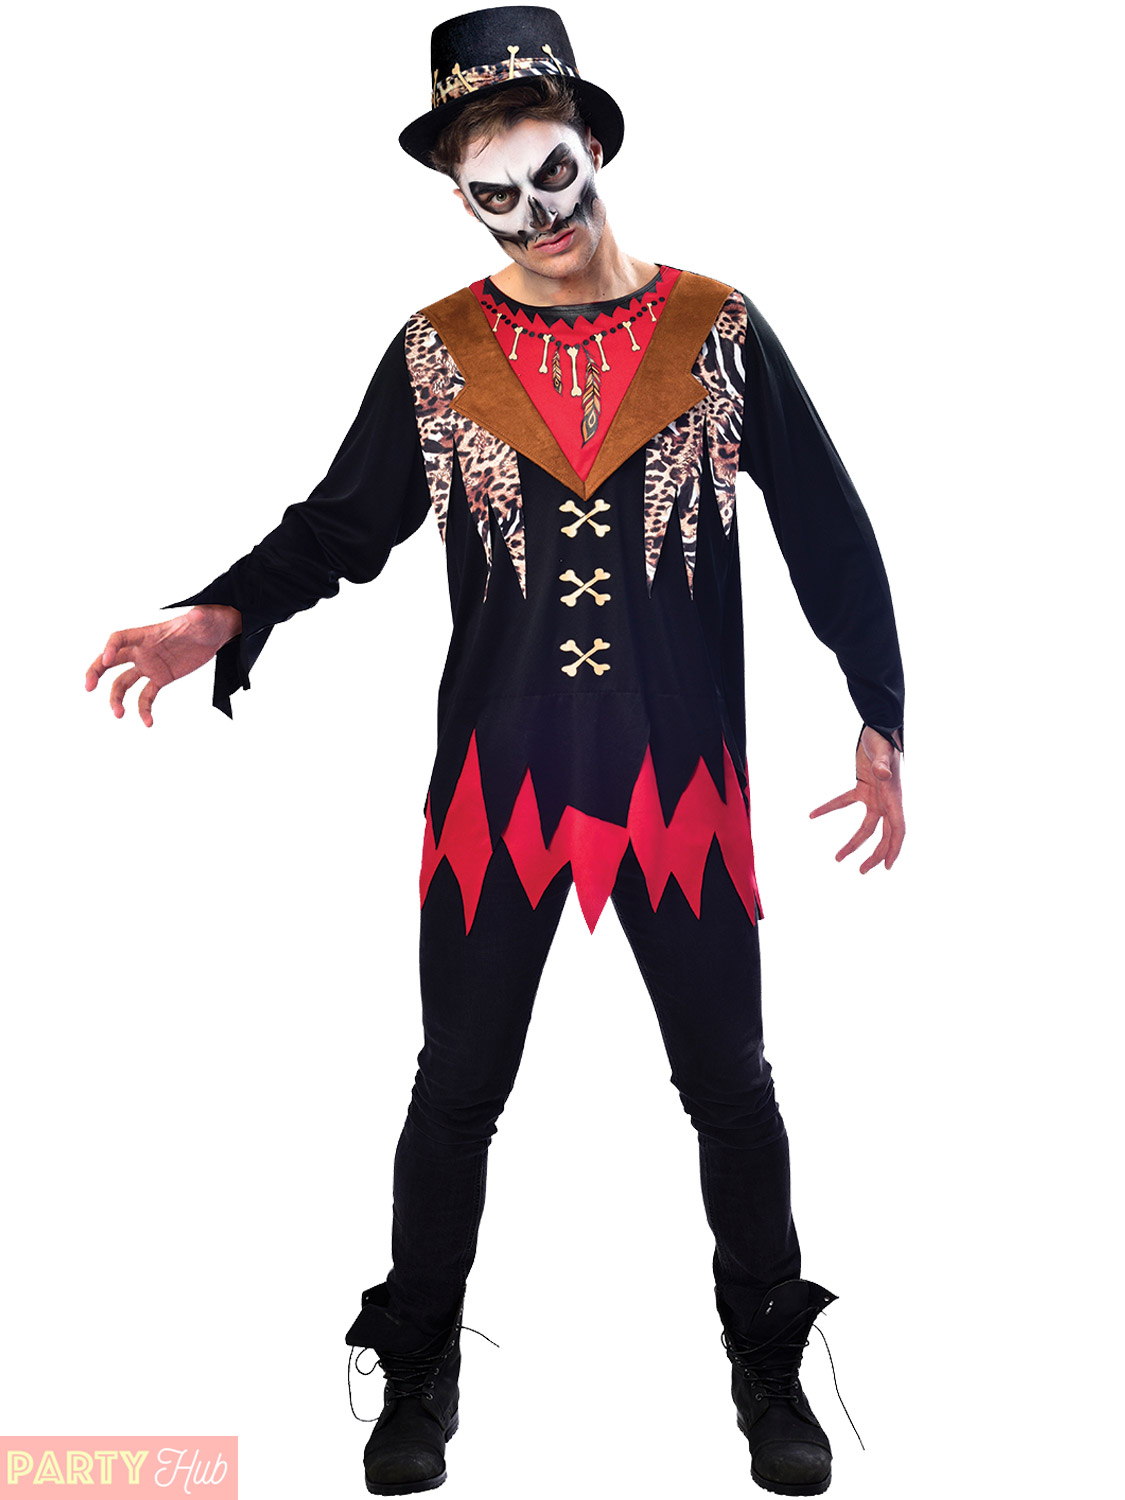 Details about Mens Witch Doctor Costume Adults Voodoo Halloween Fancy Dress  Horror Outfit